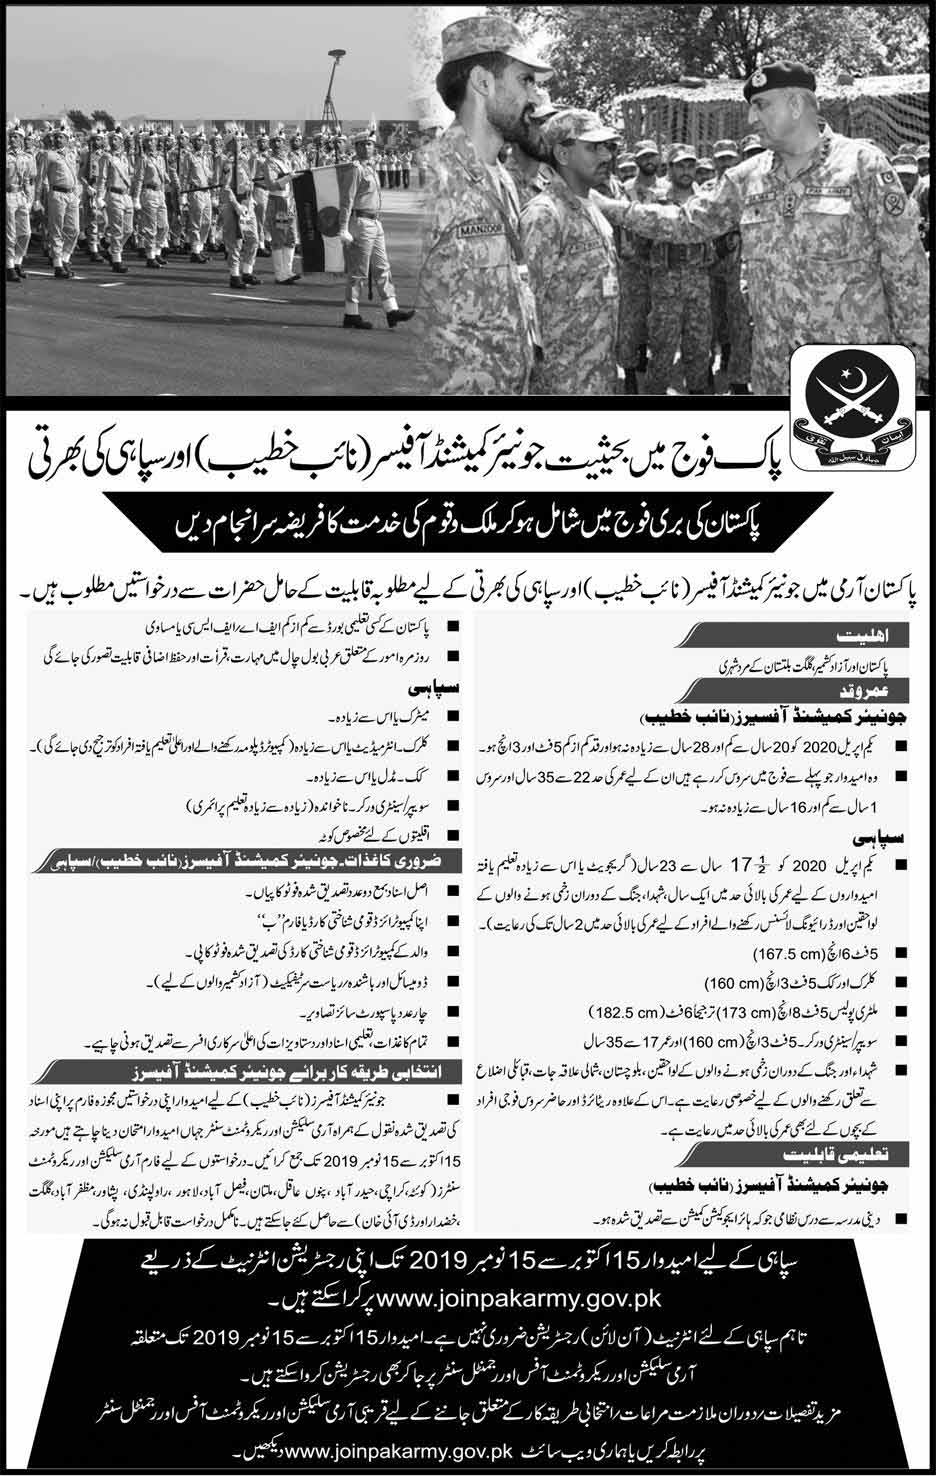 Join Pakistan as Naib Khateeb Commissioned Officer Oct 2019